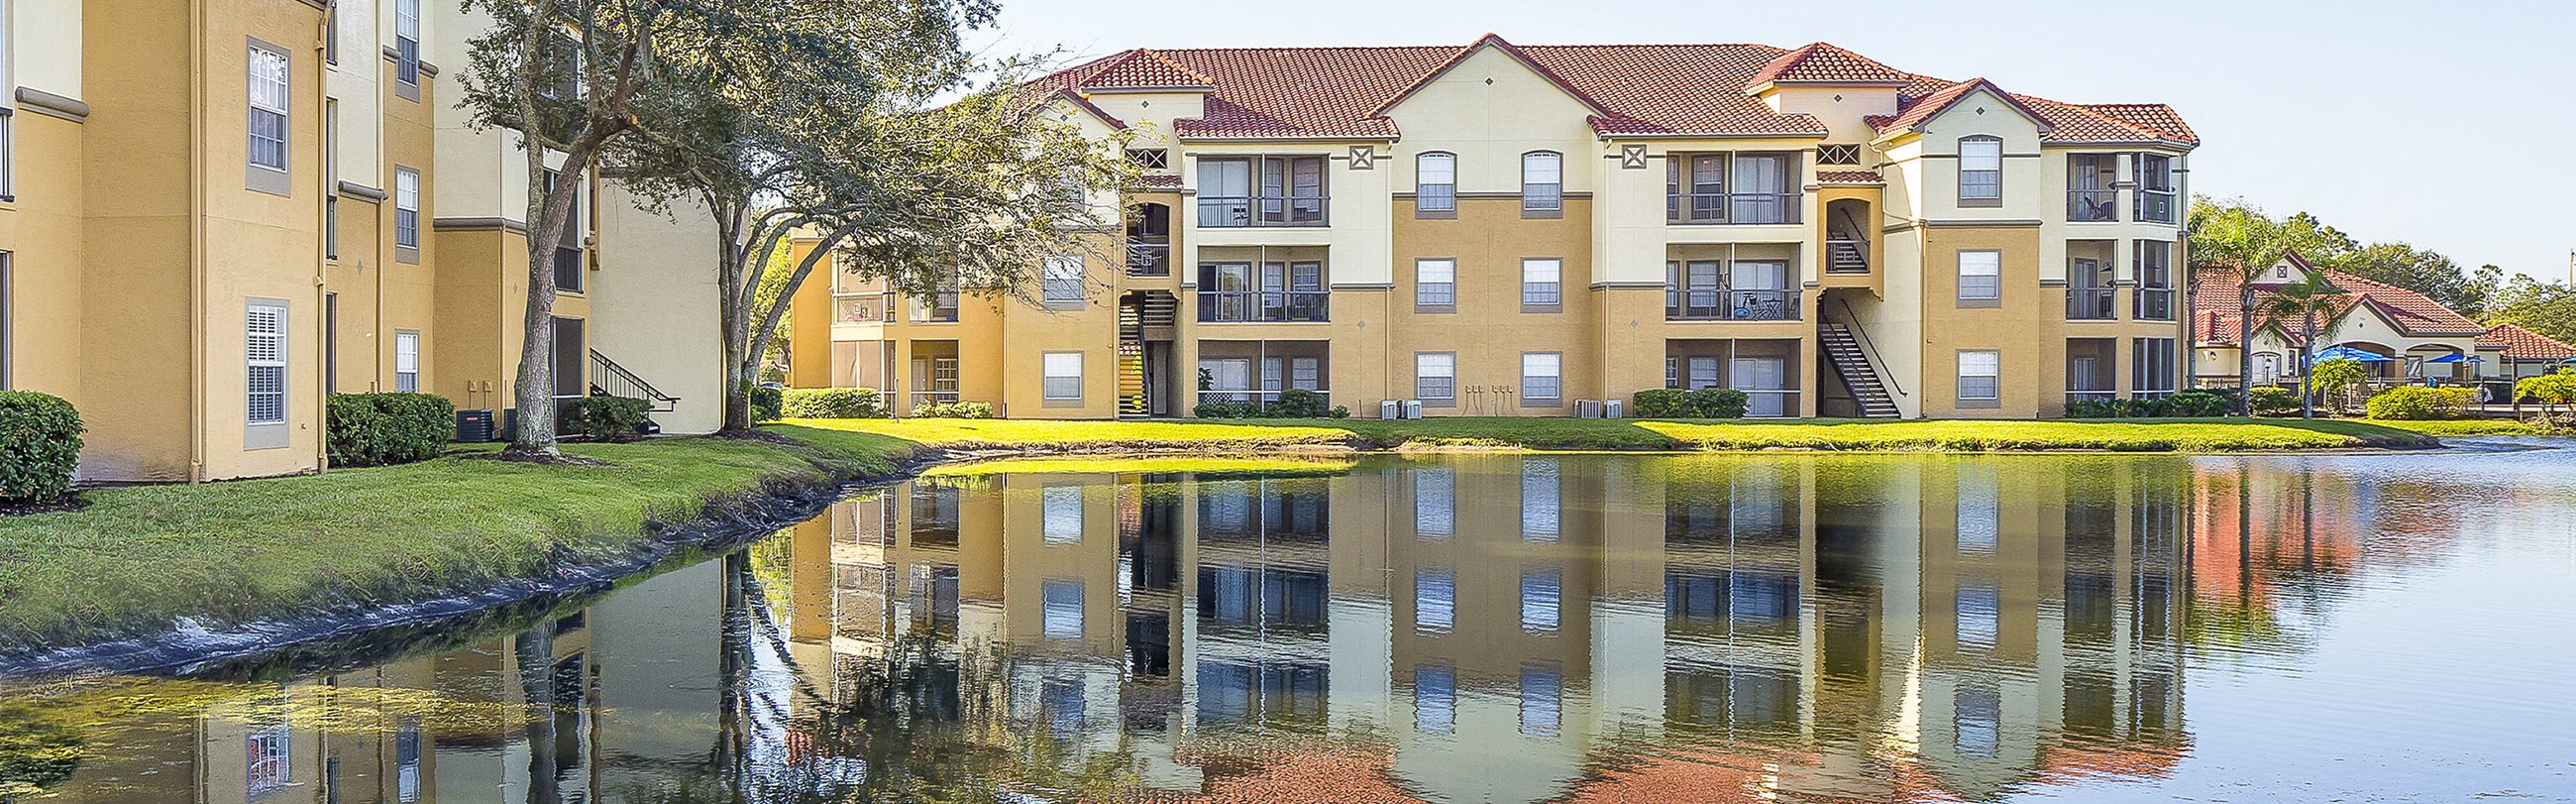 Andover Place at Cross Creek Apartments lake views